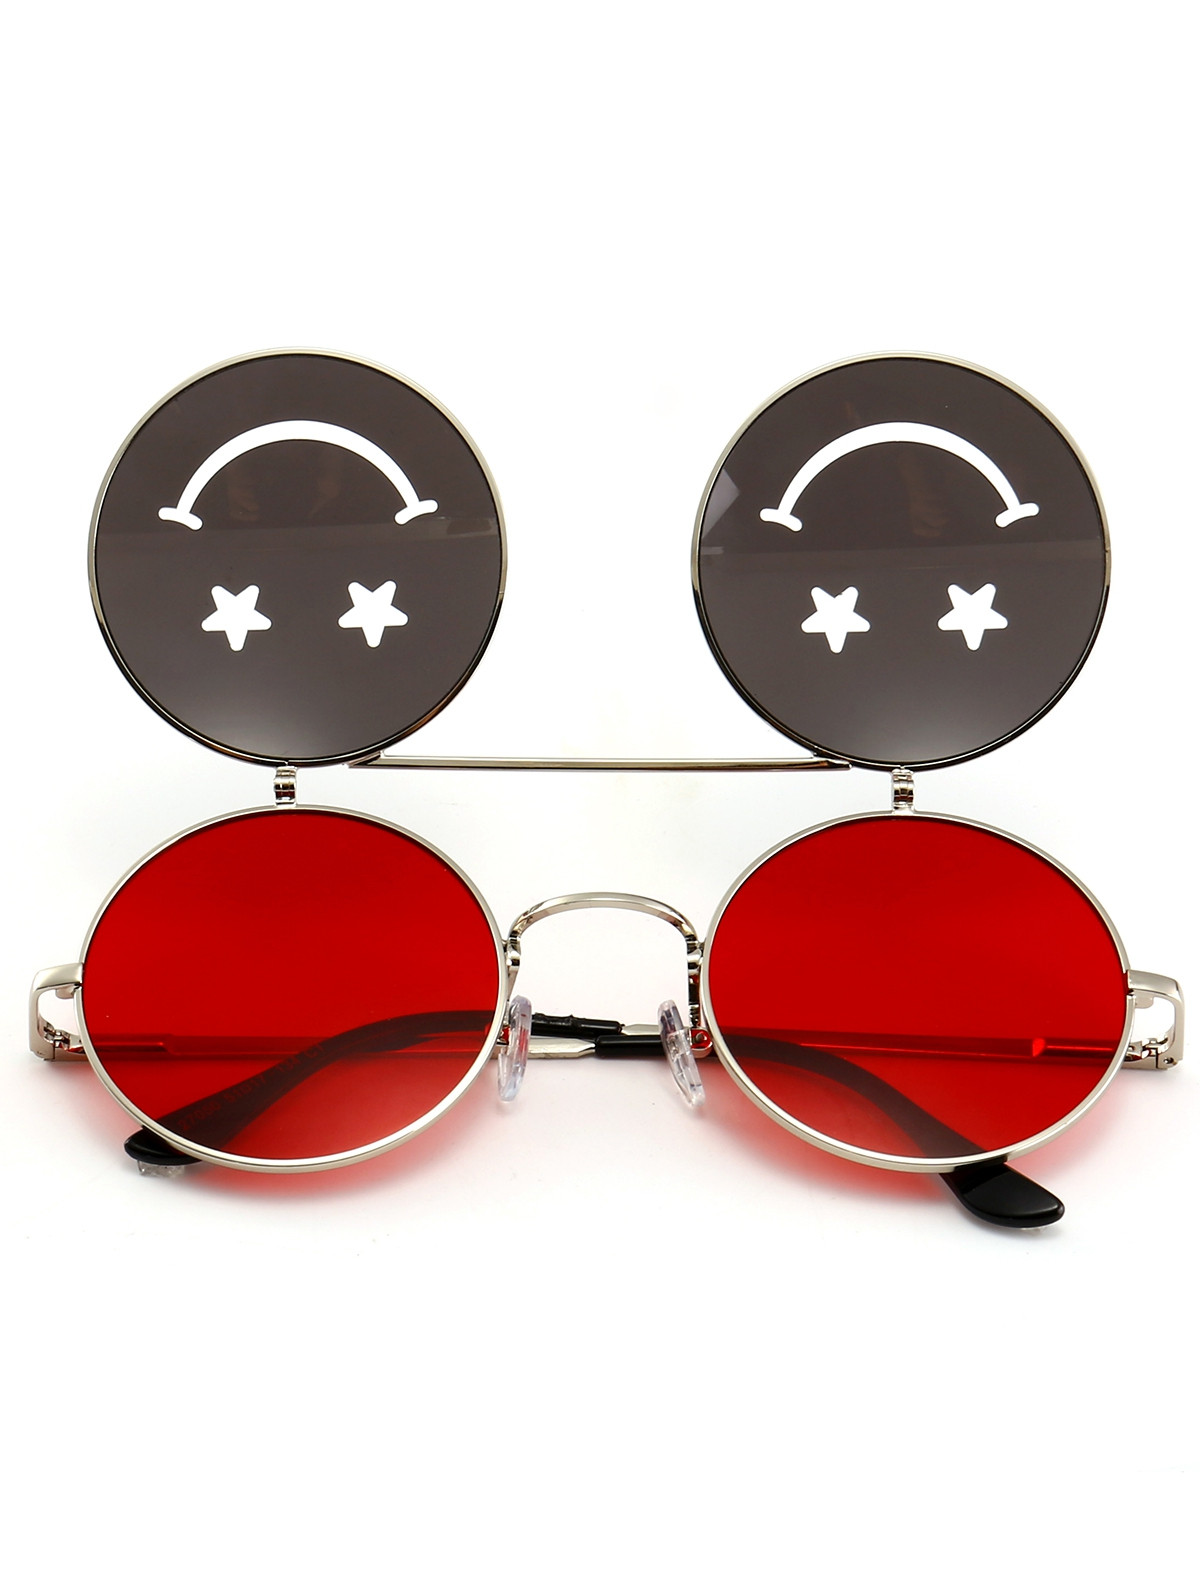 Funny Smiling Face Flip-open Round Shape Sunglasses RED